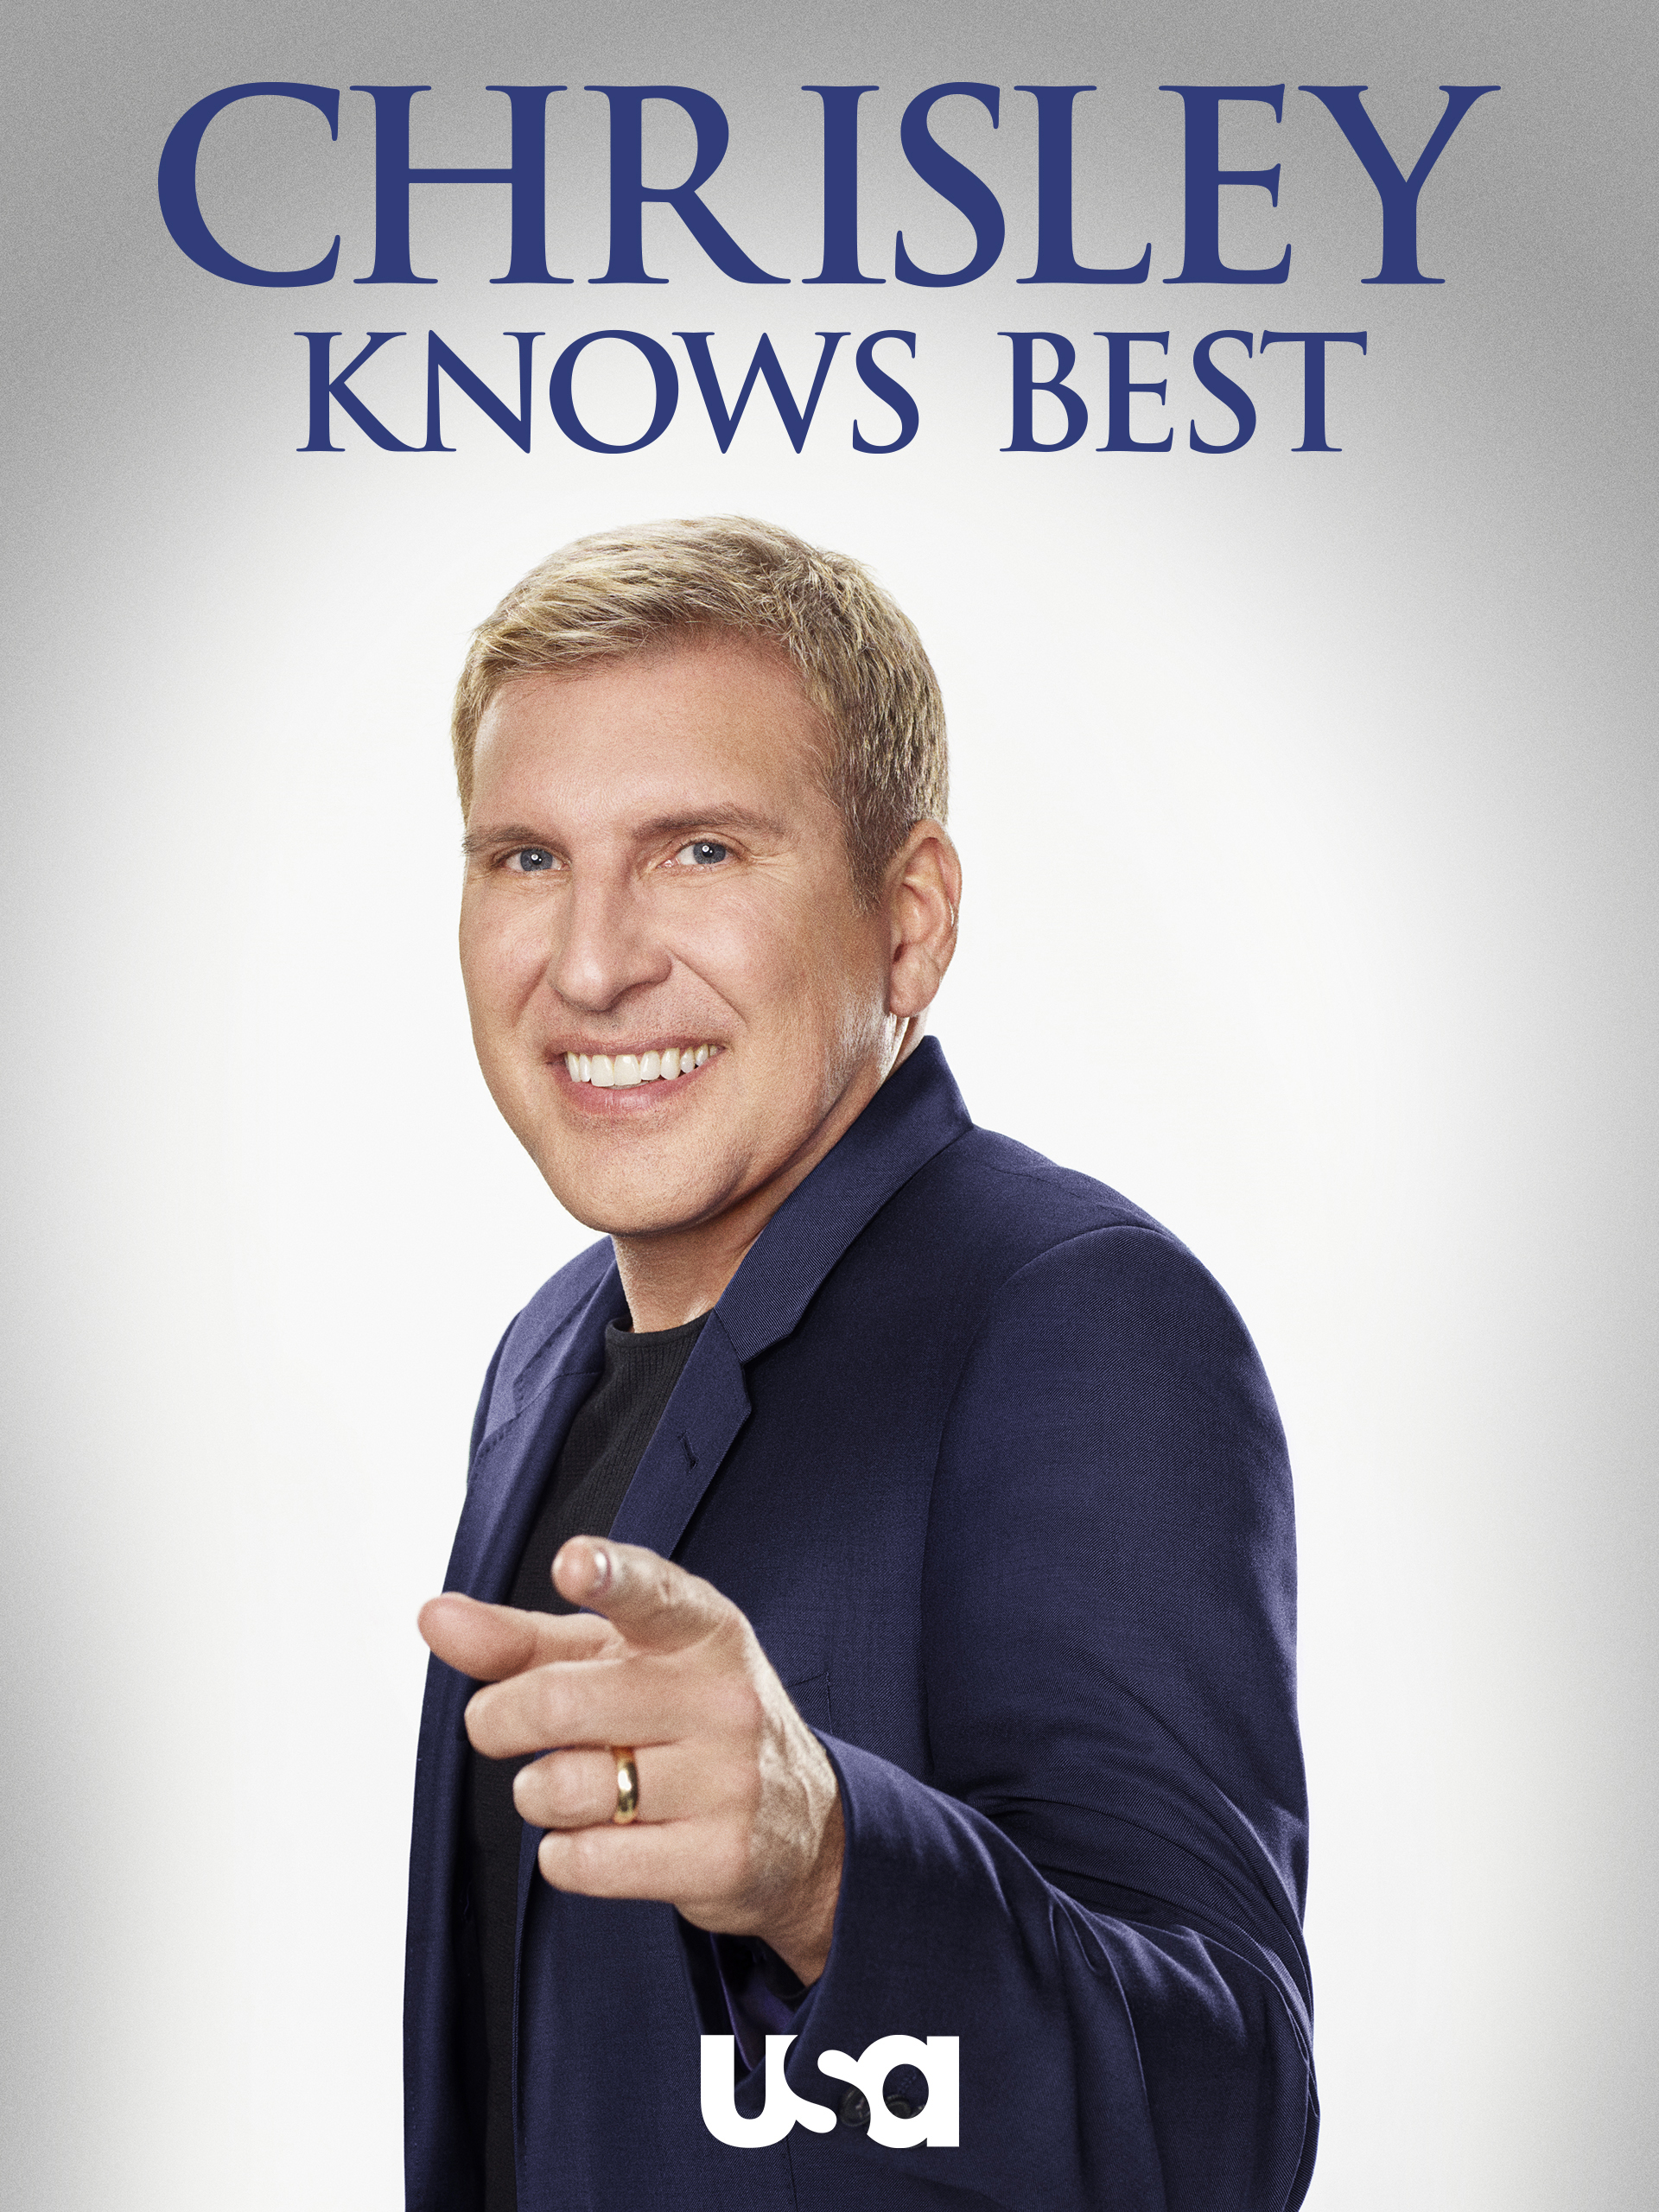 Chrisley Knows Best Julie Chrisley Is READY To Plow Her Husband Todd's Face!